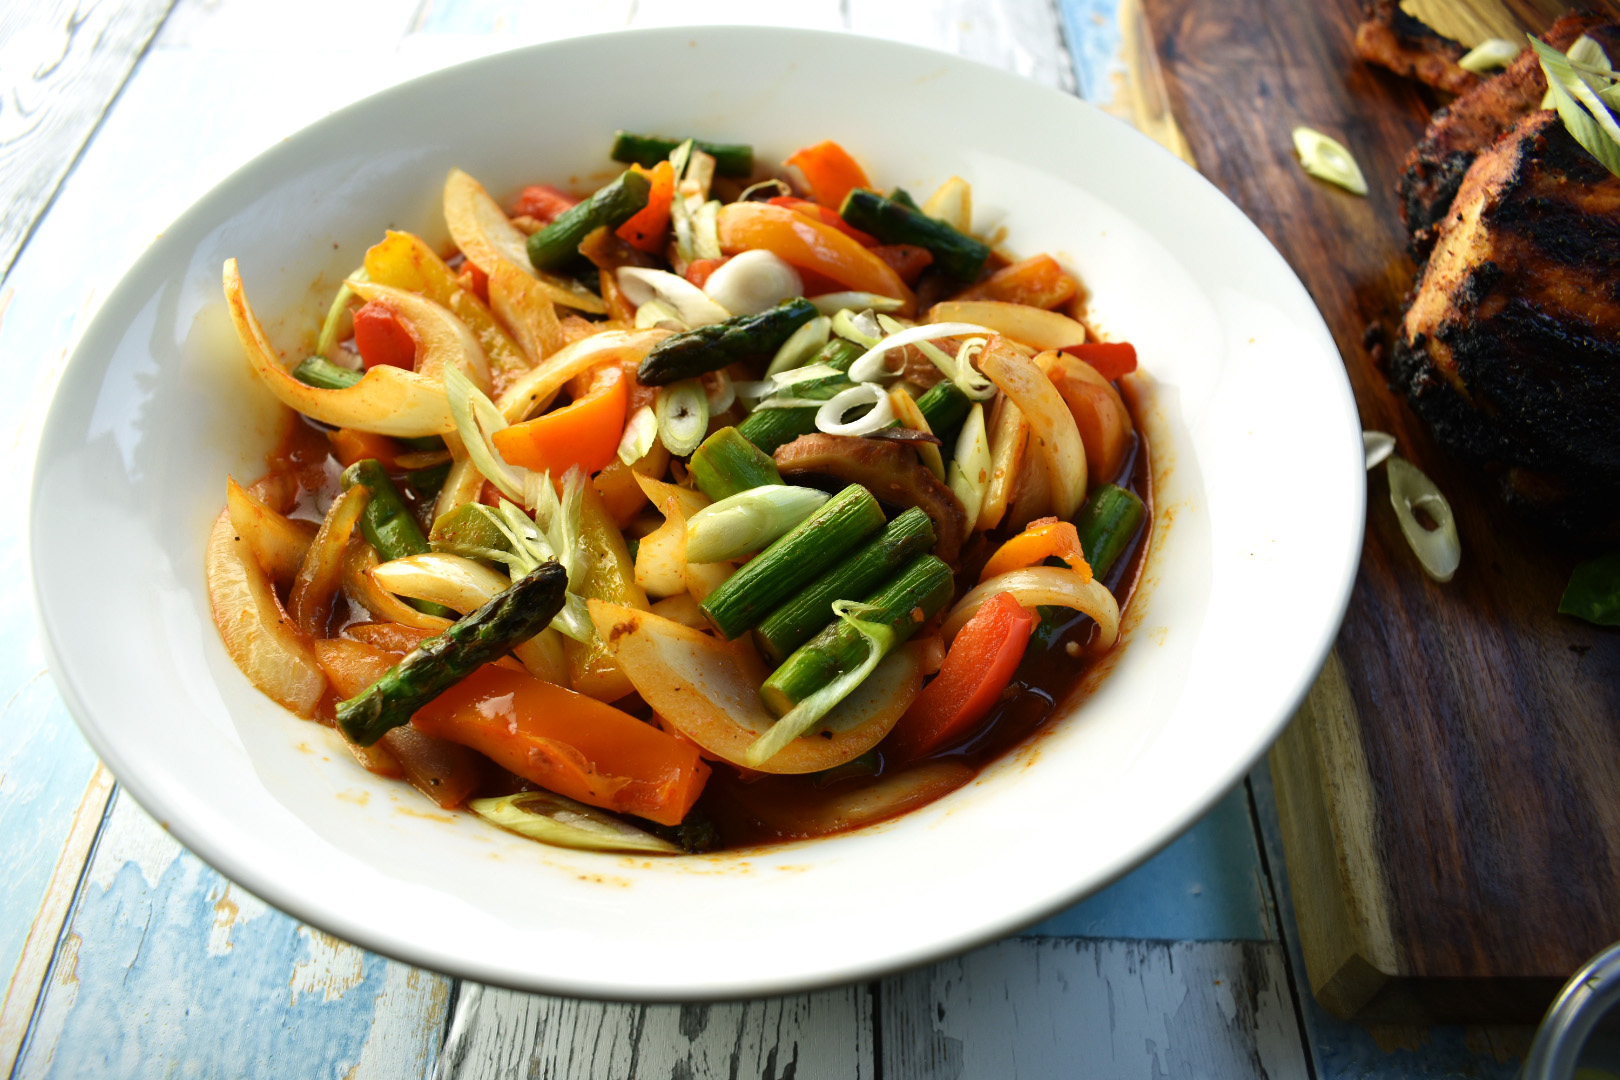 Korean Stir Fried Vegetables